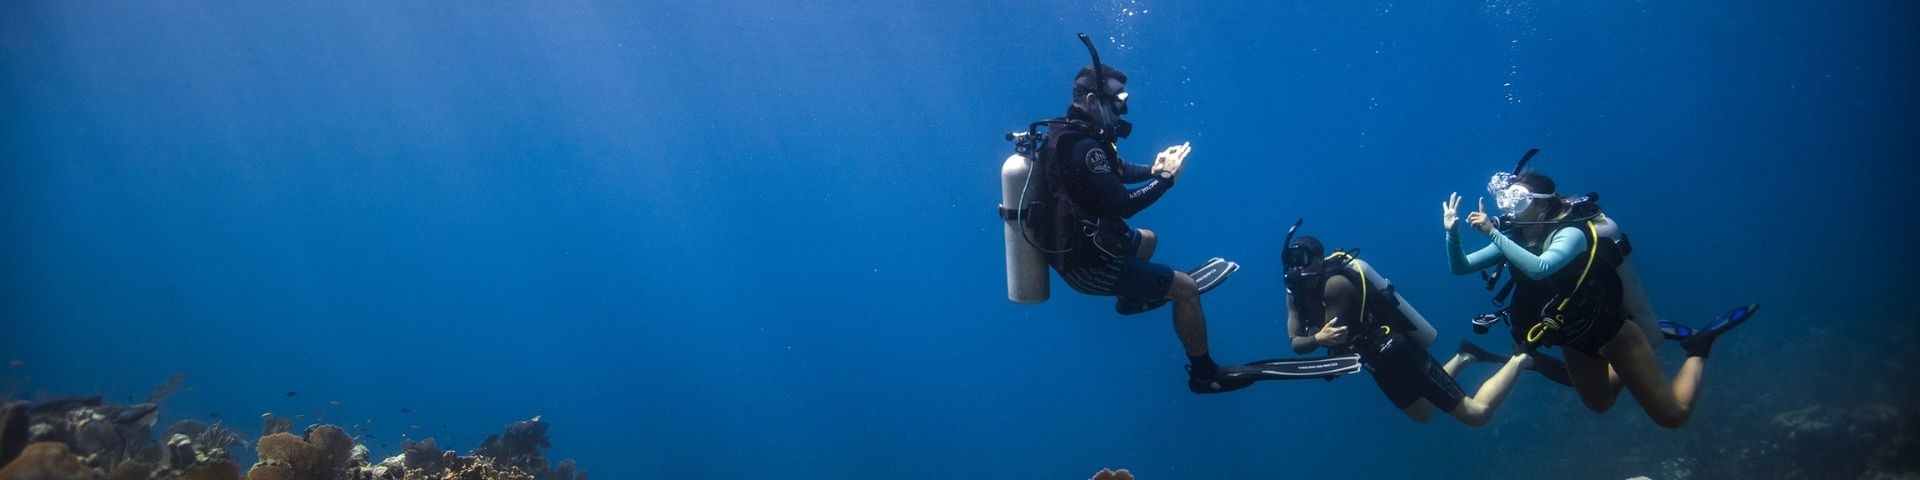 Scuba Diving Courses in India | Dive School in India | PADI certification courses | Learn Scuba Diving in Havelock